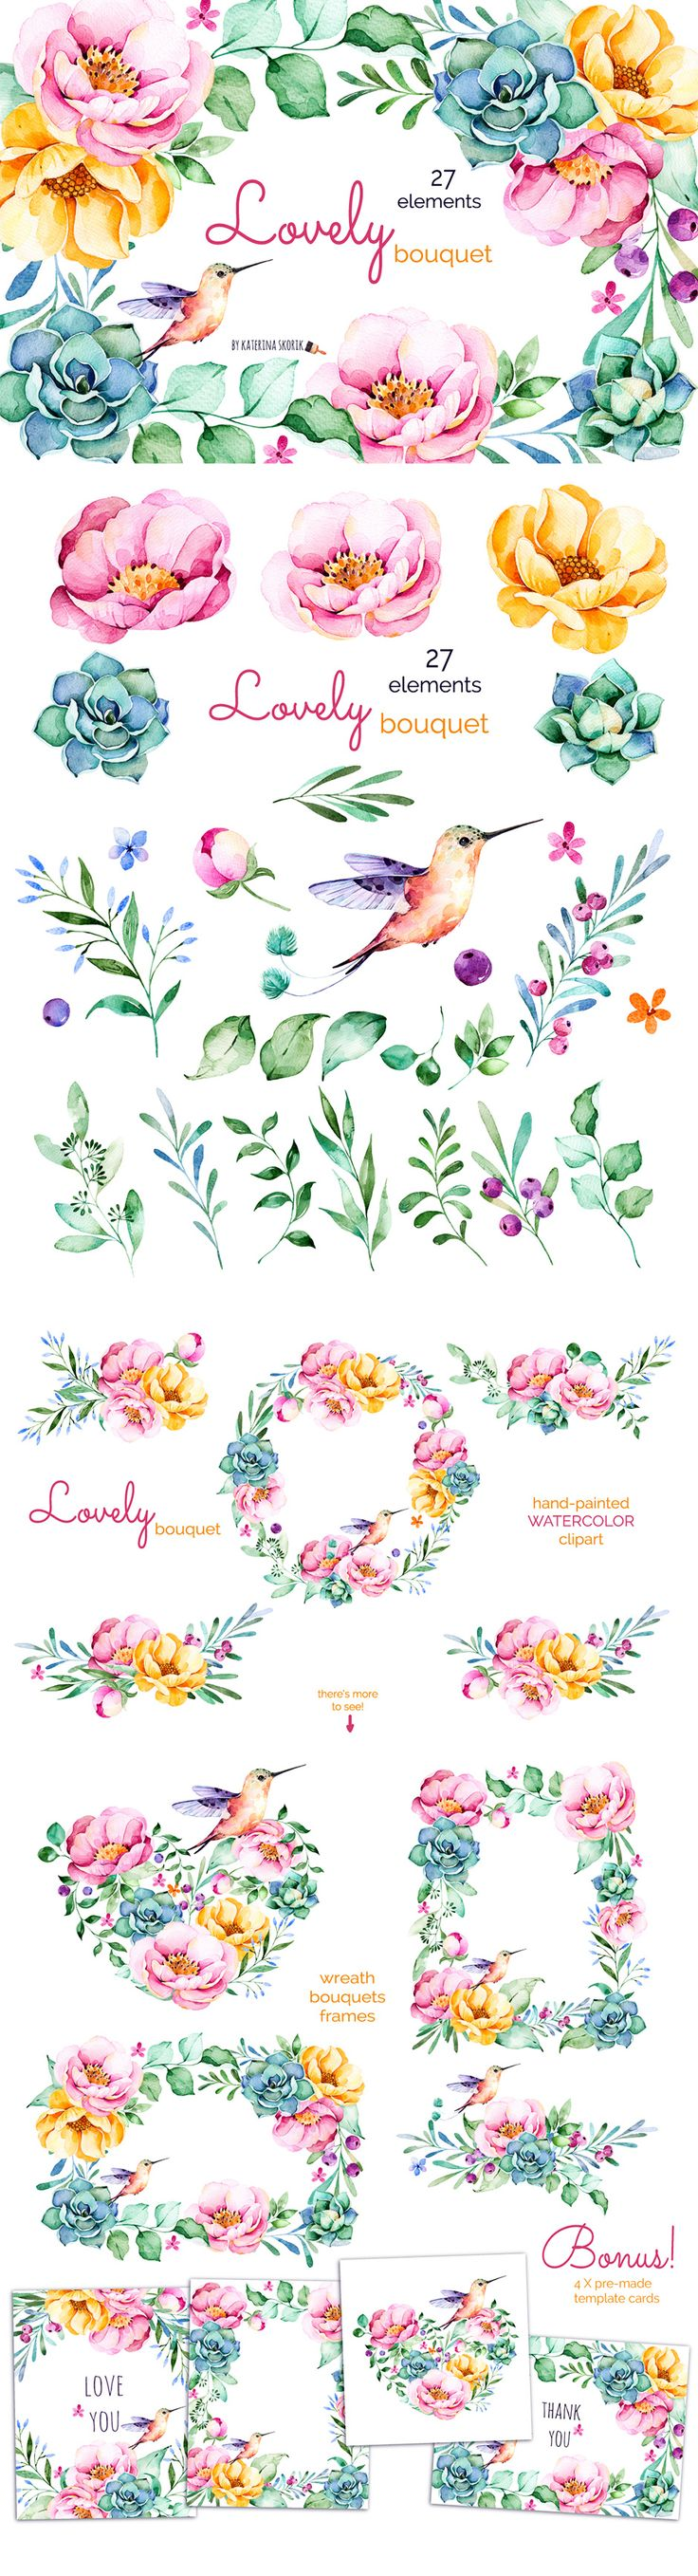 The Ultimate Artistic Design Bundle #DesignCuts #bouquet #flower #plant…